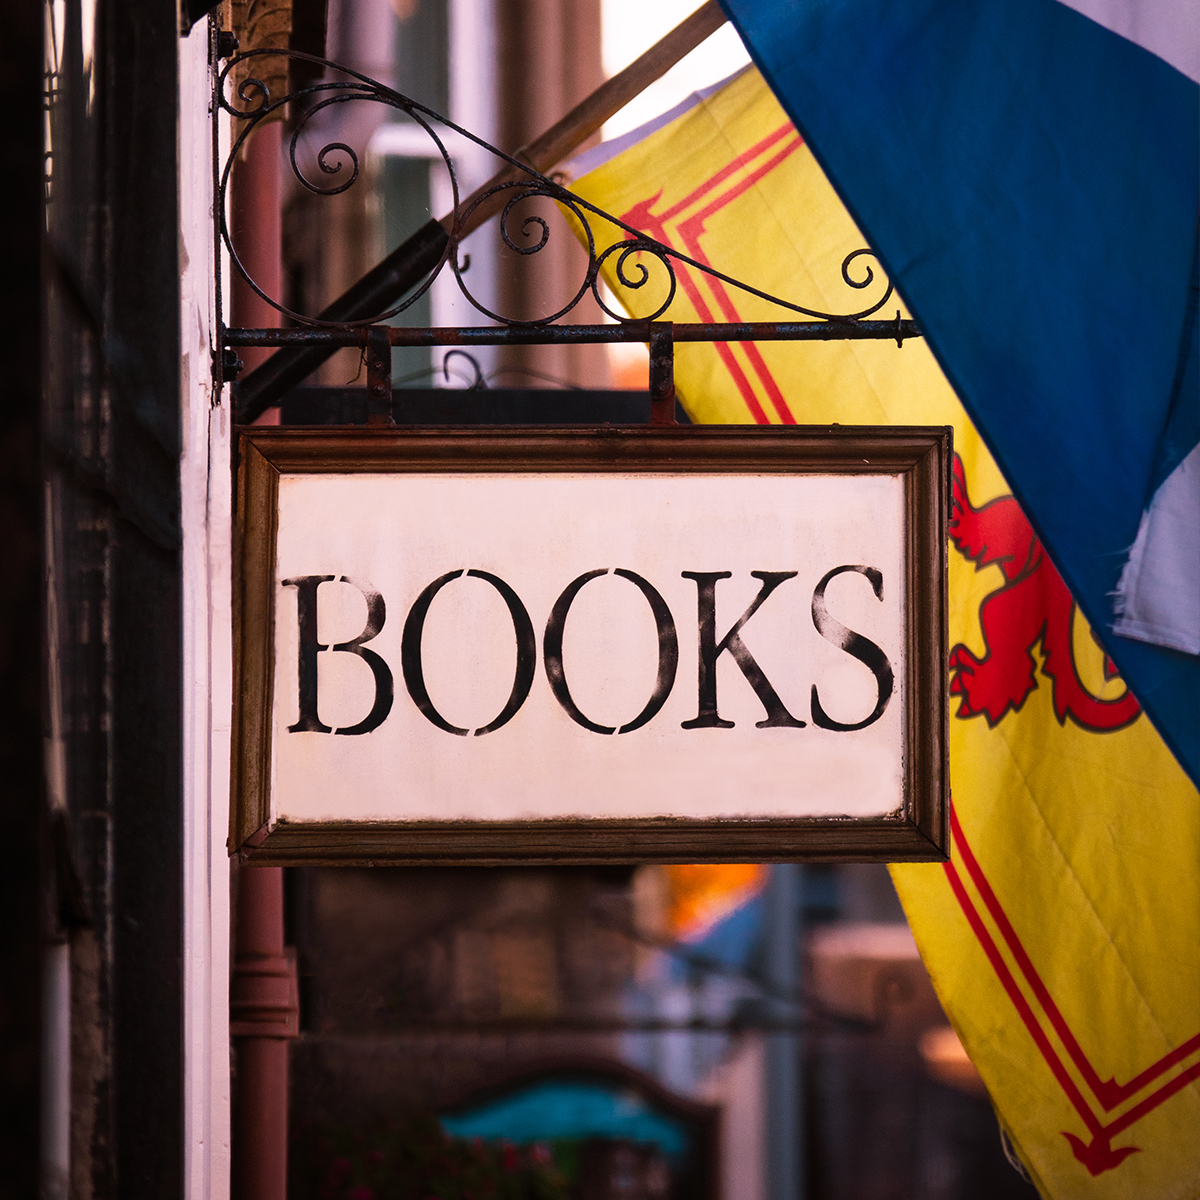 Book shop sign in Edinburgh